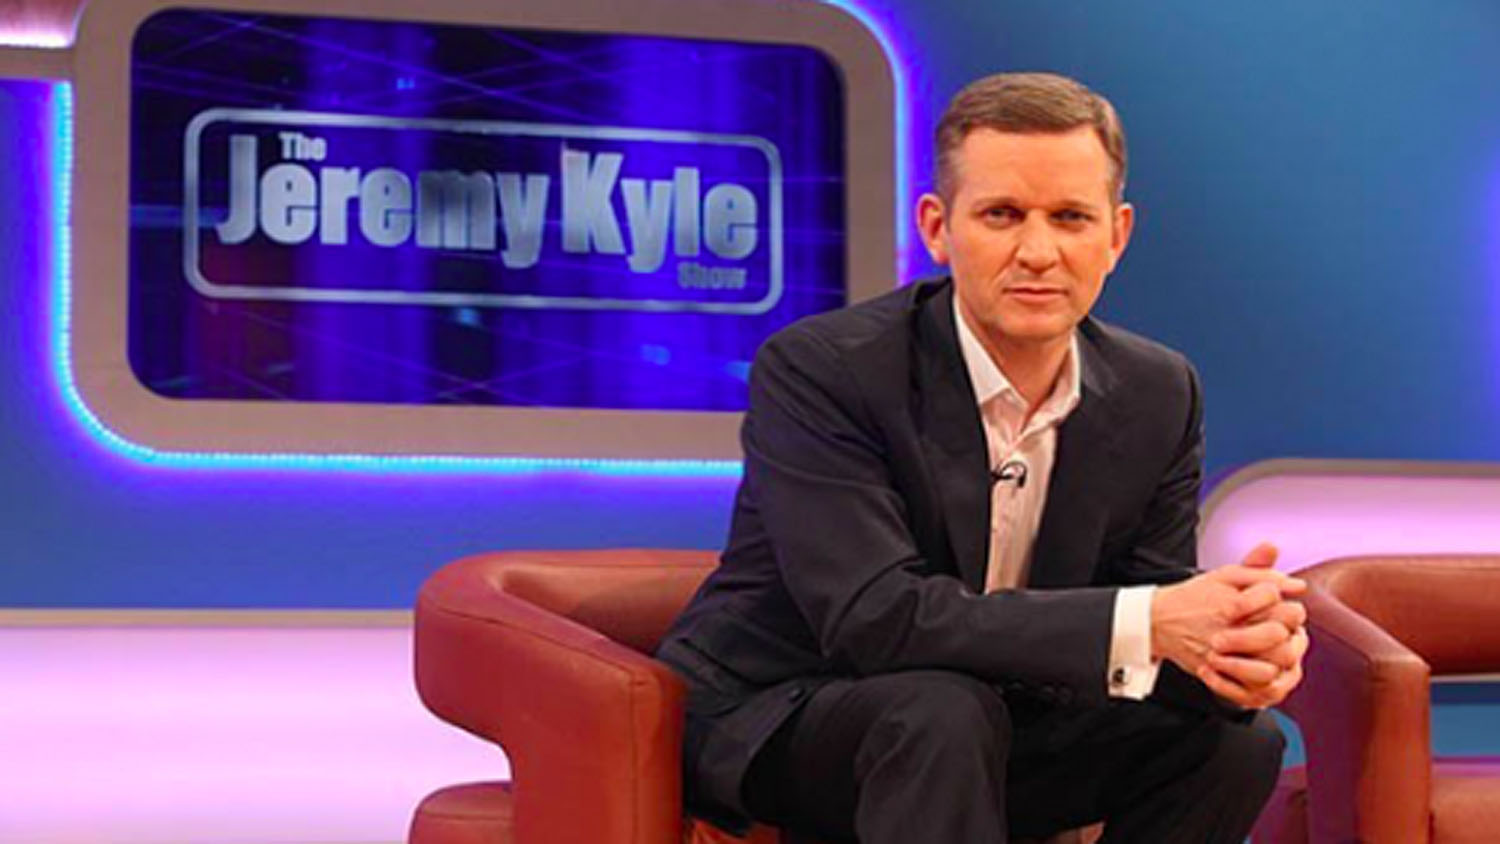 ITV axes The Jeremy Kyle Show